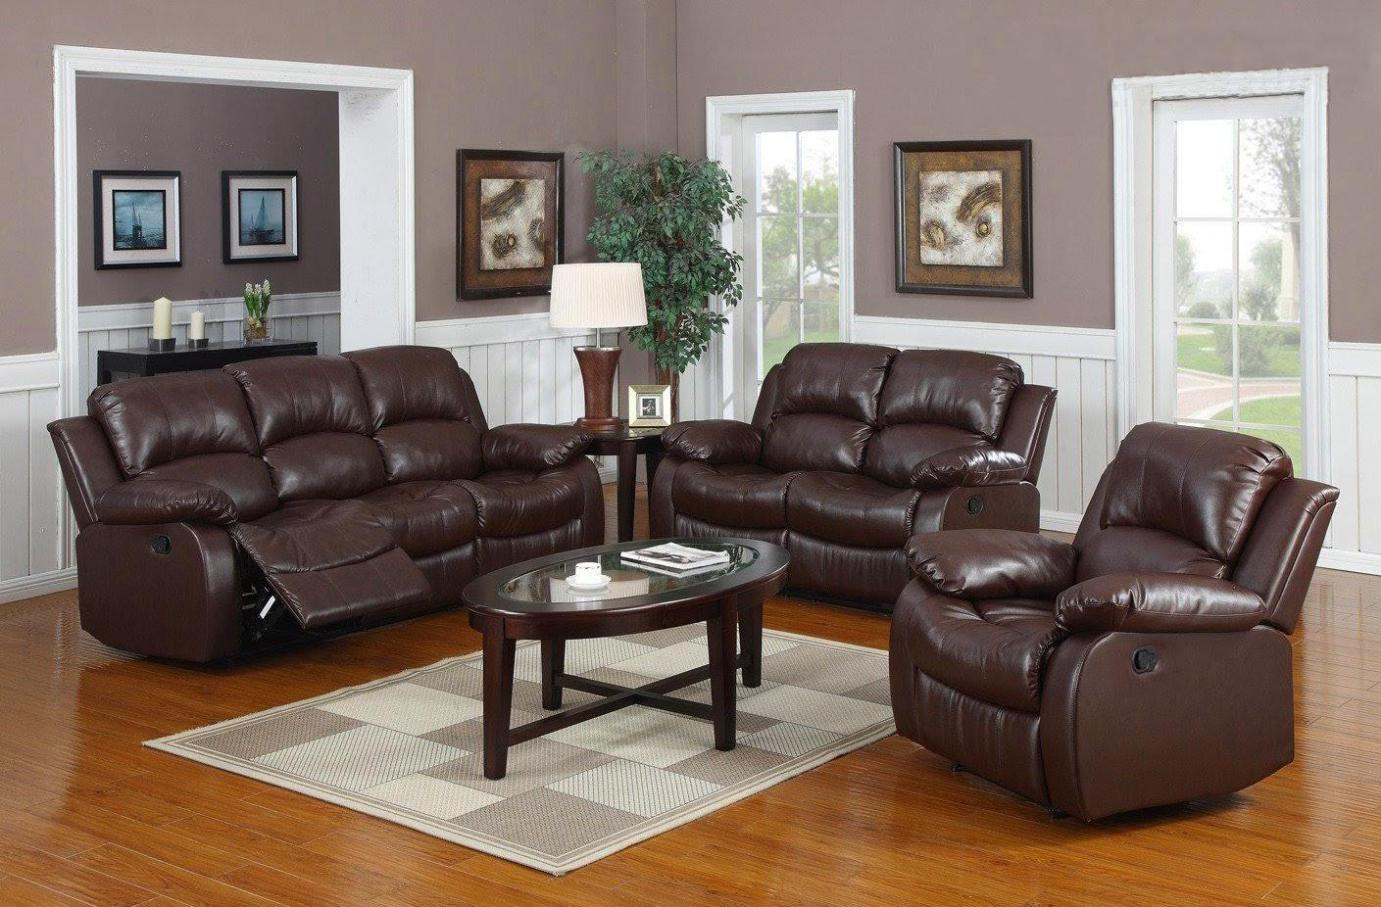 Image of: Sectional Sleeper Sofa With Recliners